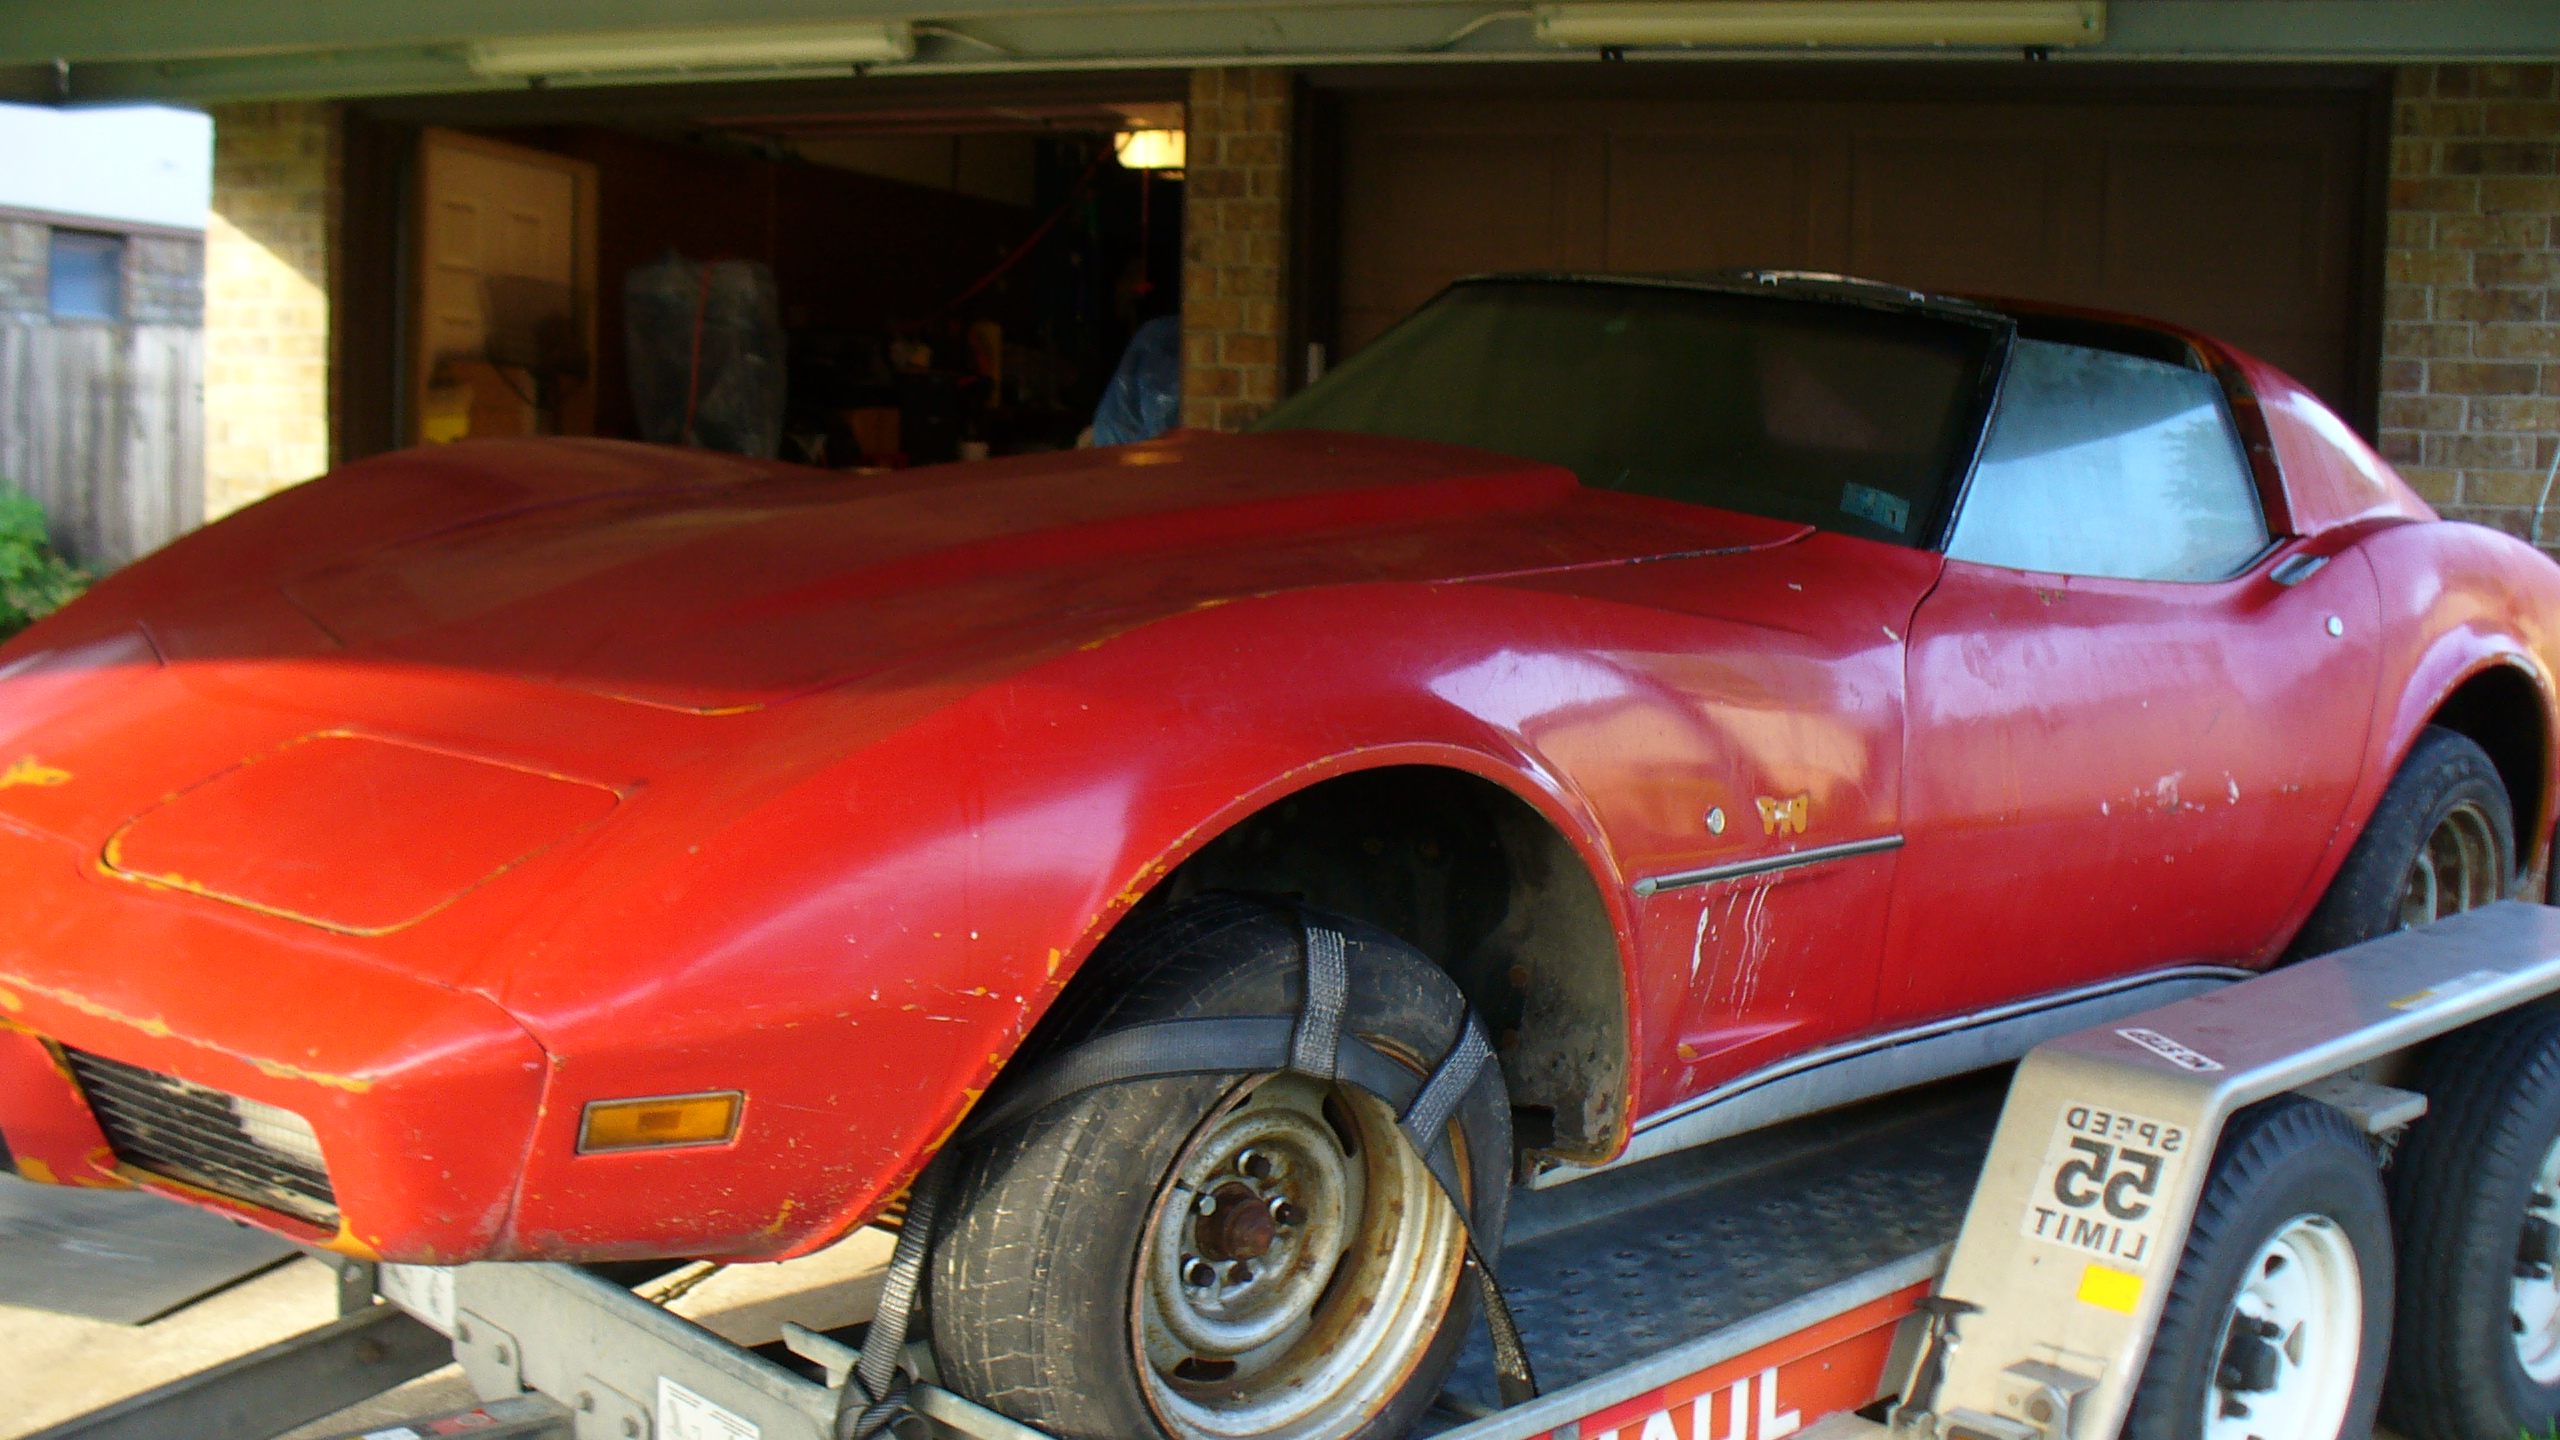 Cash for Cars Mclean, VA | Sell Your Junk Car | The Clunker Junker